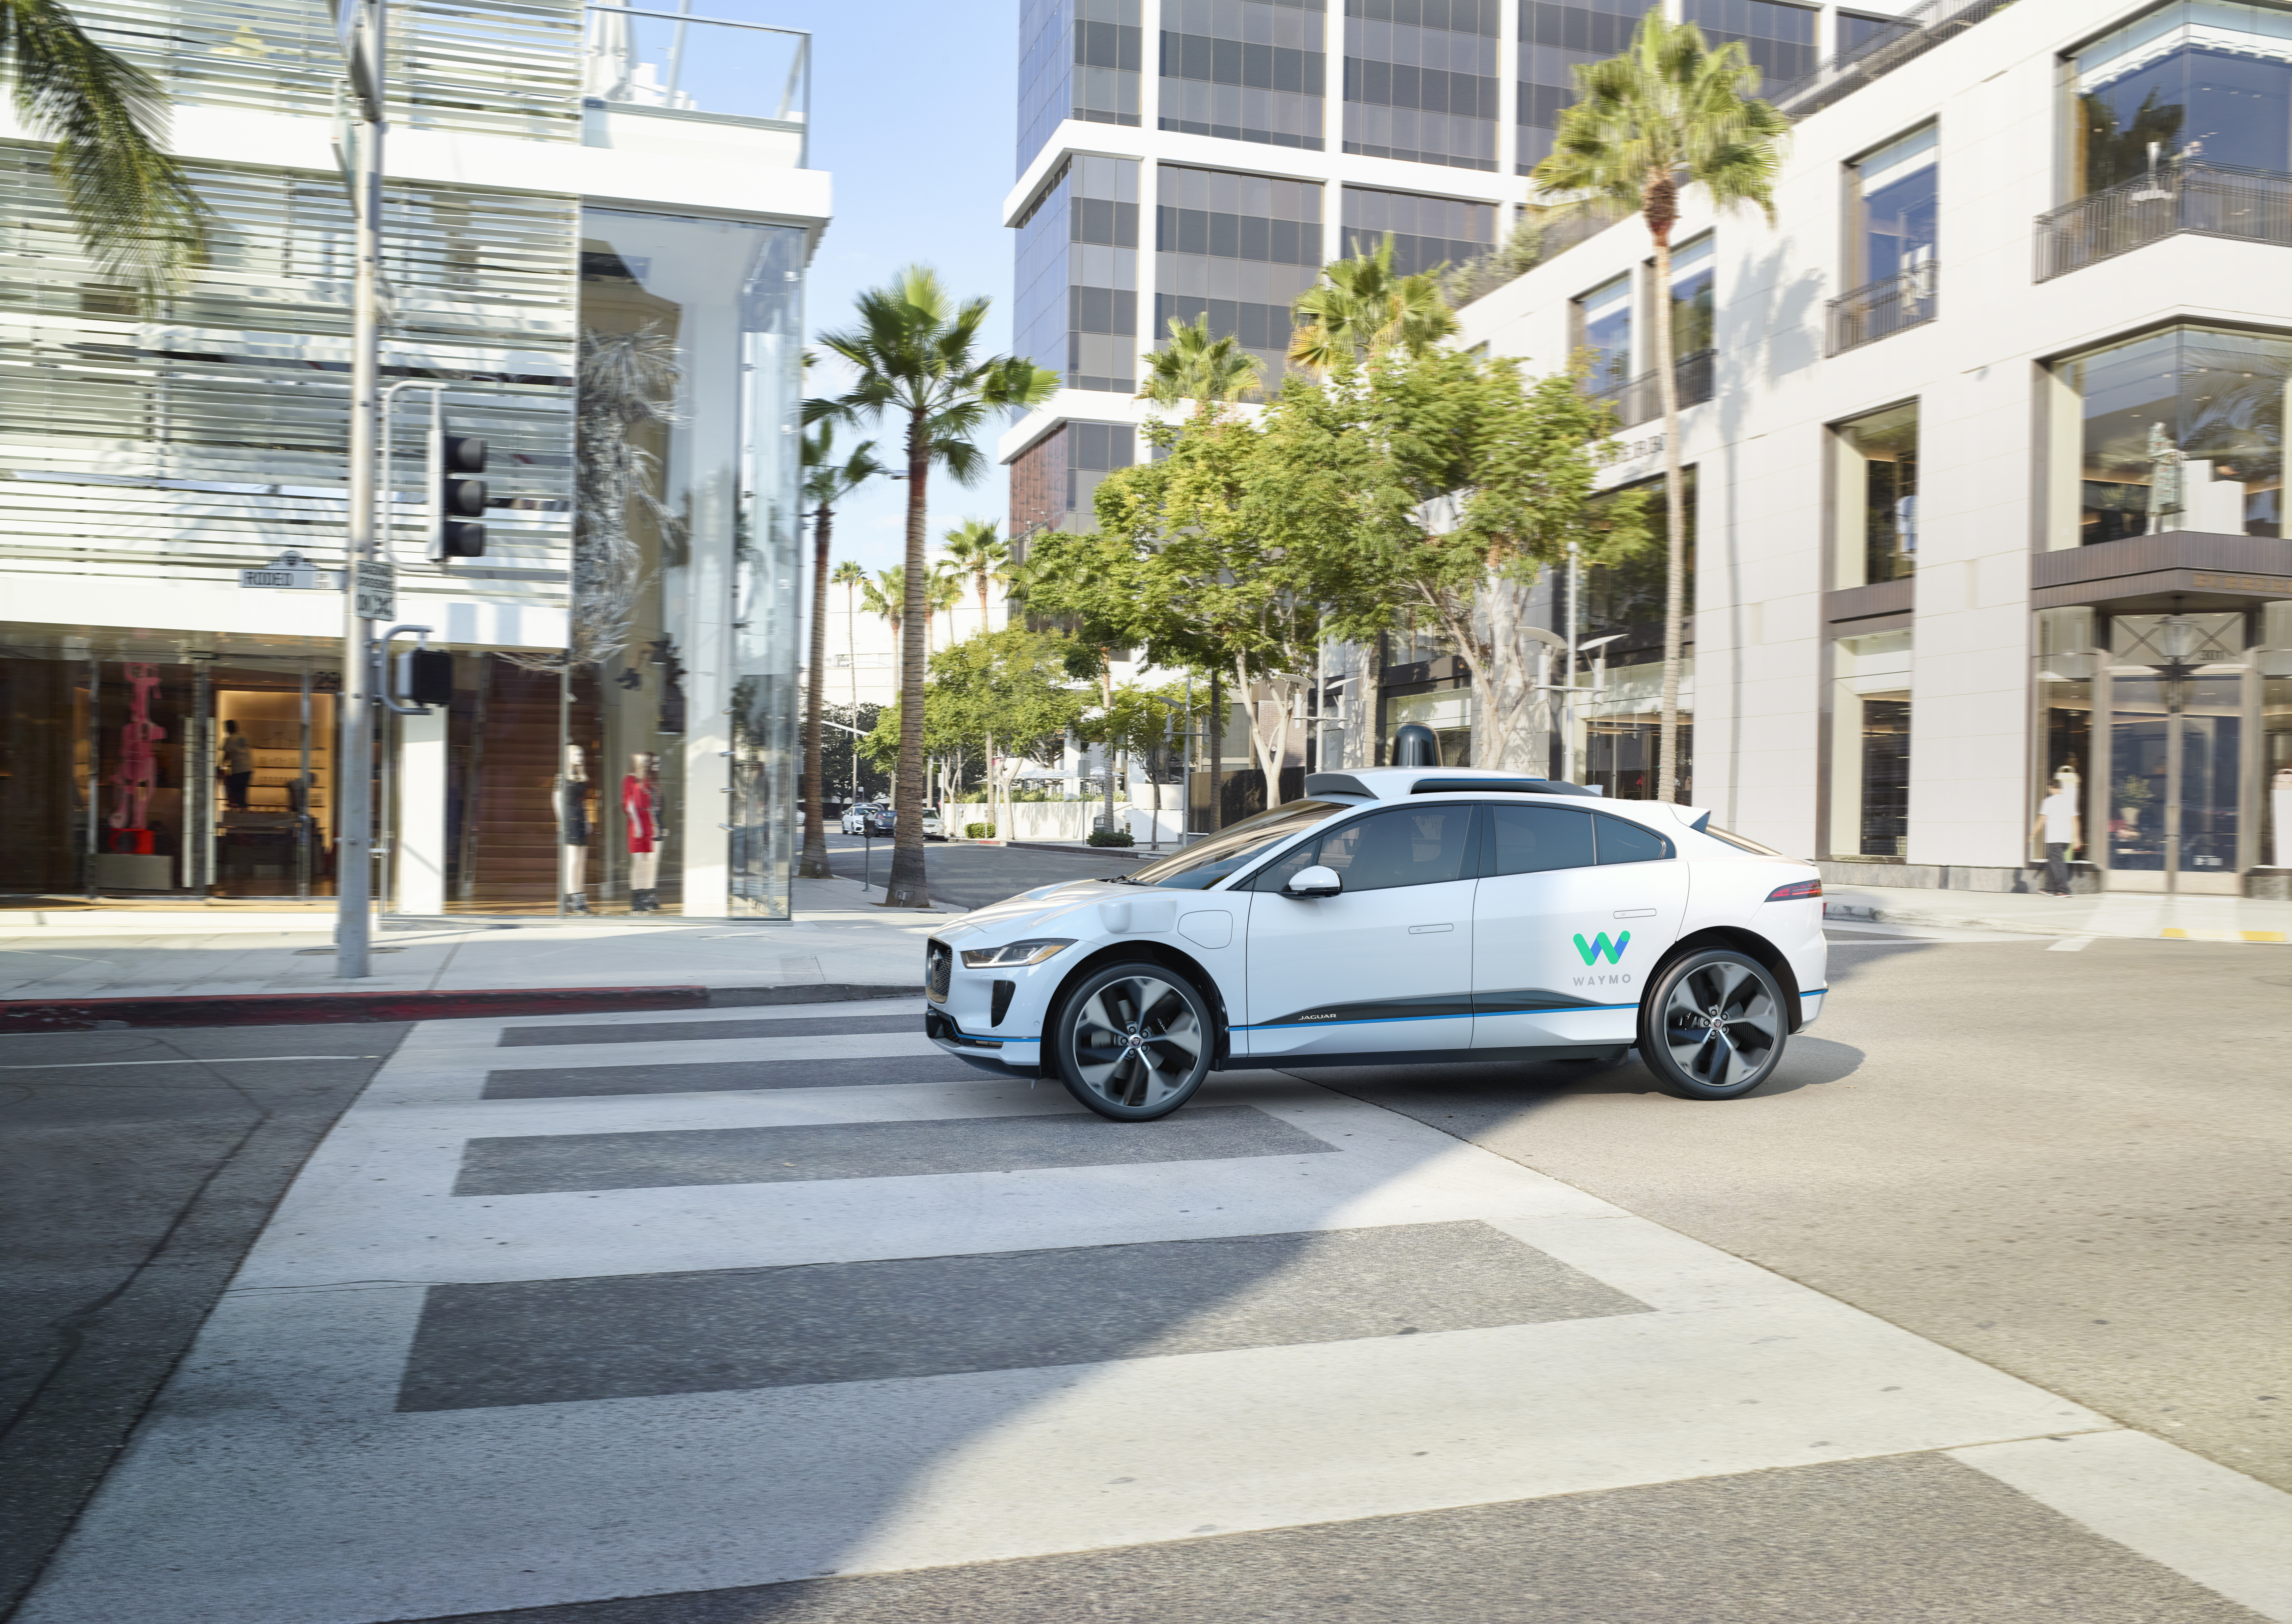 The new Jaguar vehicle that will be available through a Waymo ride-hail service.